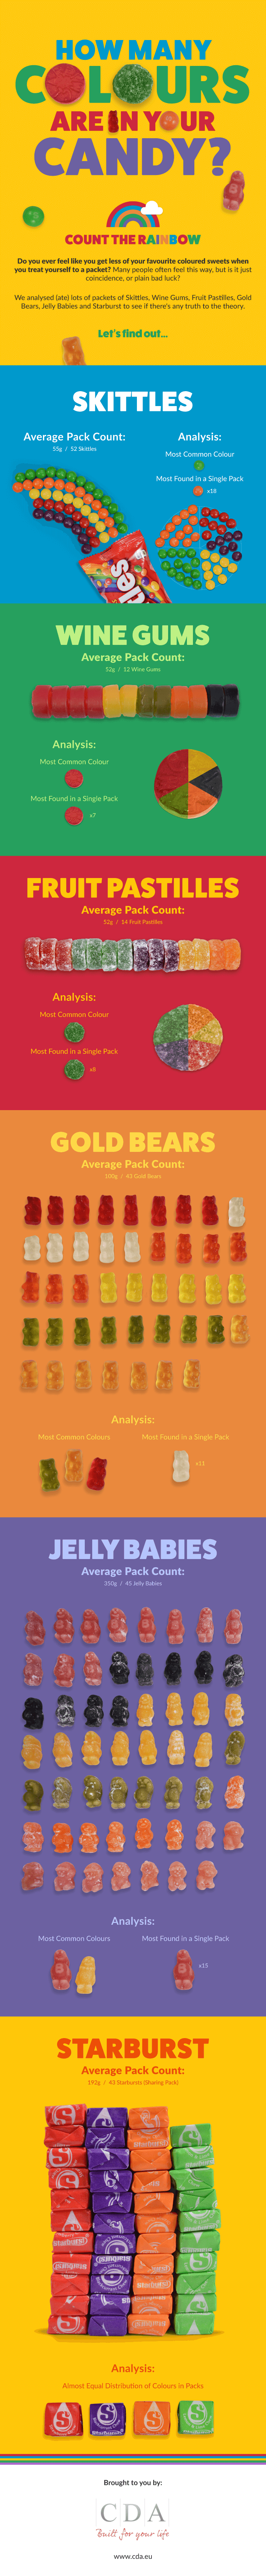 Analyzing The Most Colorful Candies - Infographic